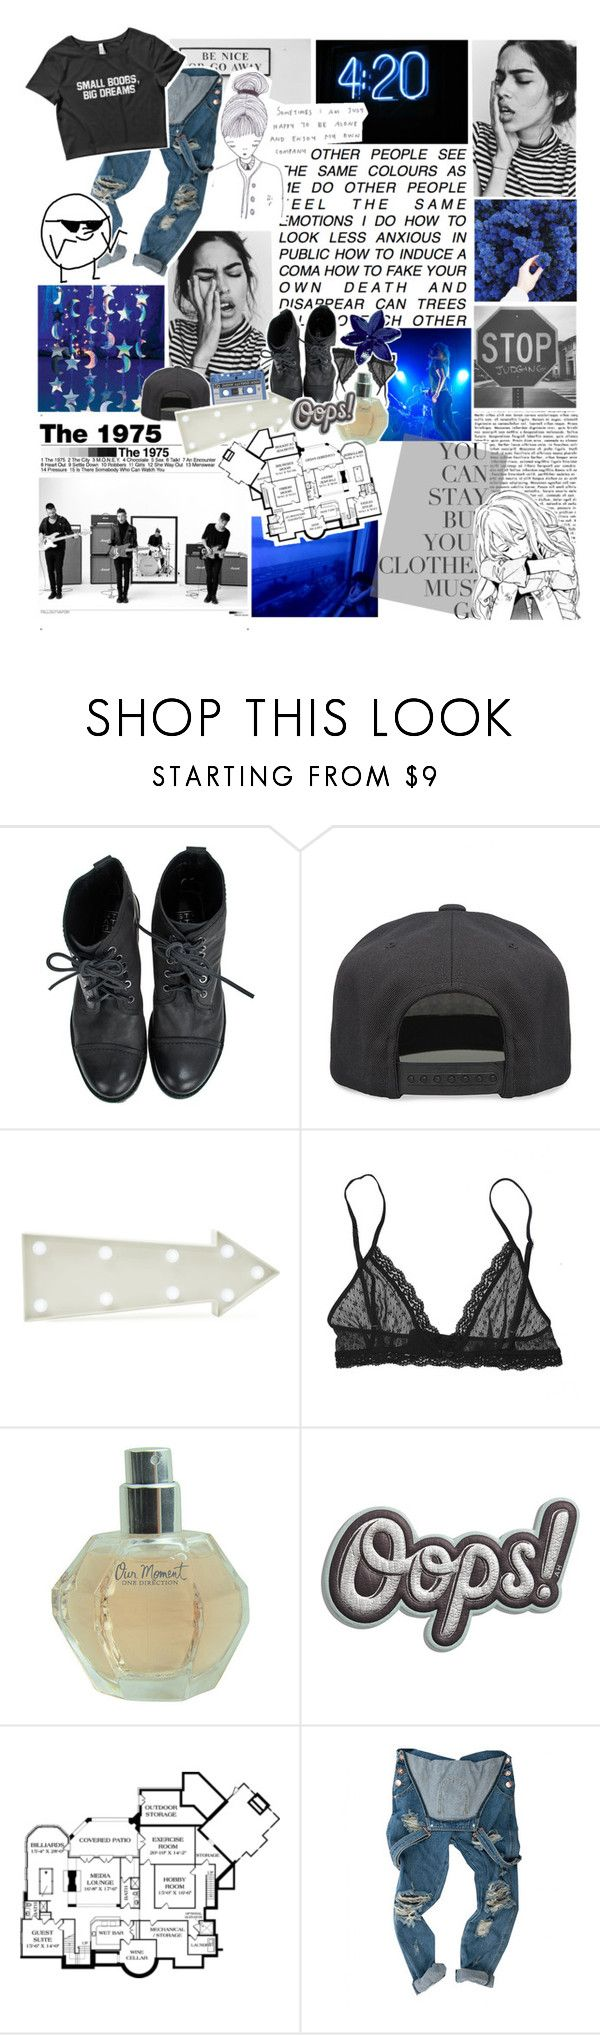 """VICTIM OF SOCIETY - RTD!"" by everything-is-peachy ❤ liked on Polyvore featuring Polaroid, GET LOST, AME, Alex and Chloe, New Look, Eberjey, Karl Lagerfeld, Anya Hindmarch and leireyougottagged"